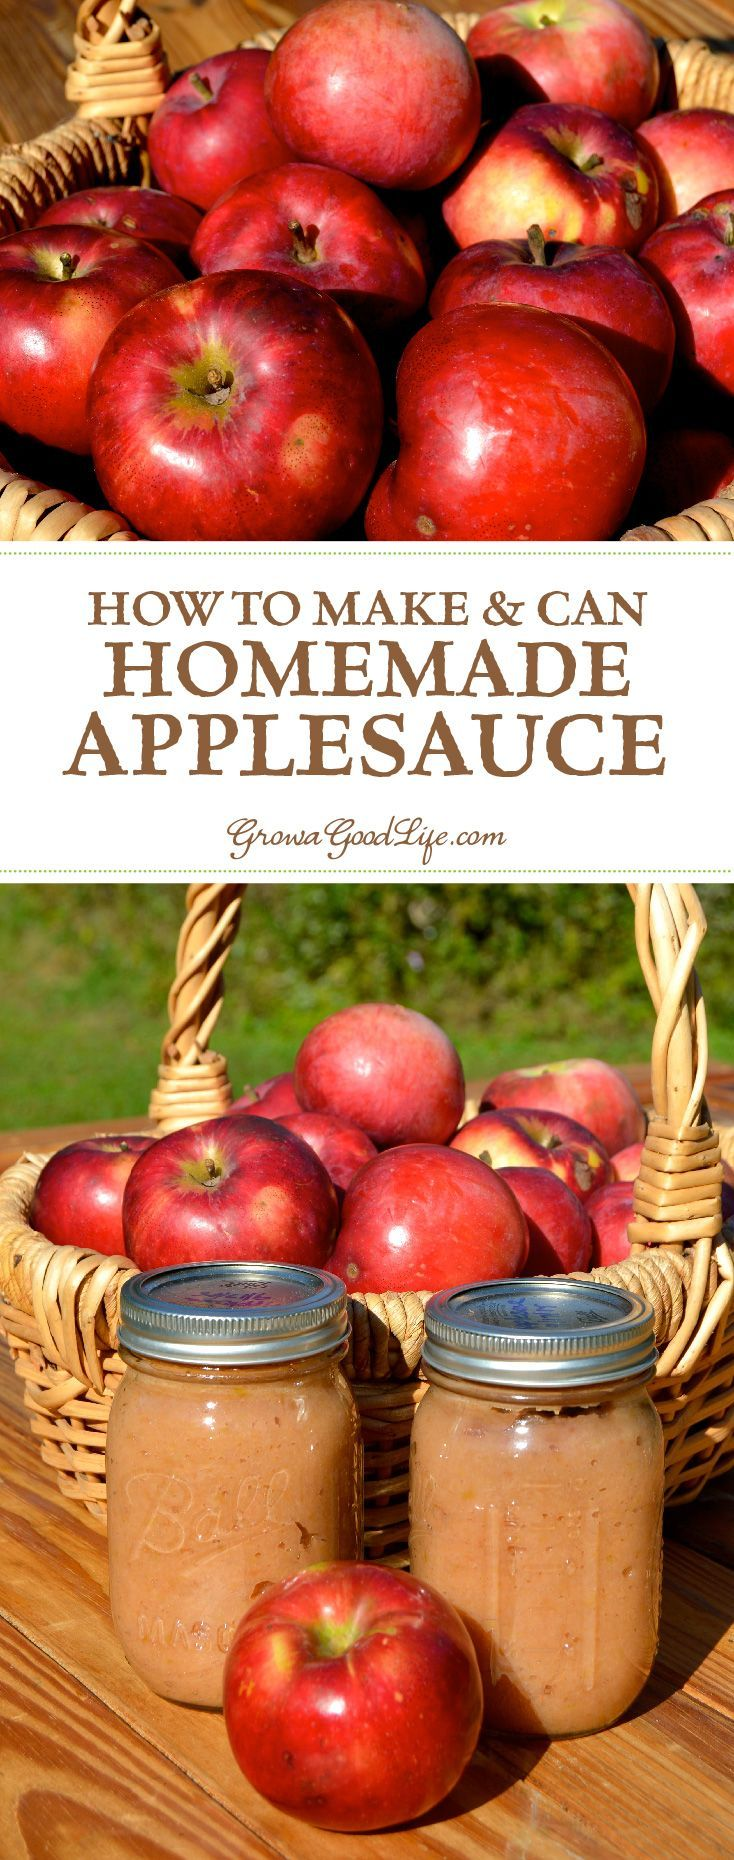 A great way to preserve apples when they are in season is to make your own homemade applesauce and can it in a water bath canner.